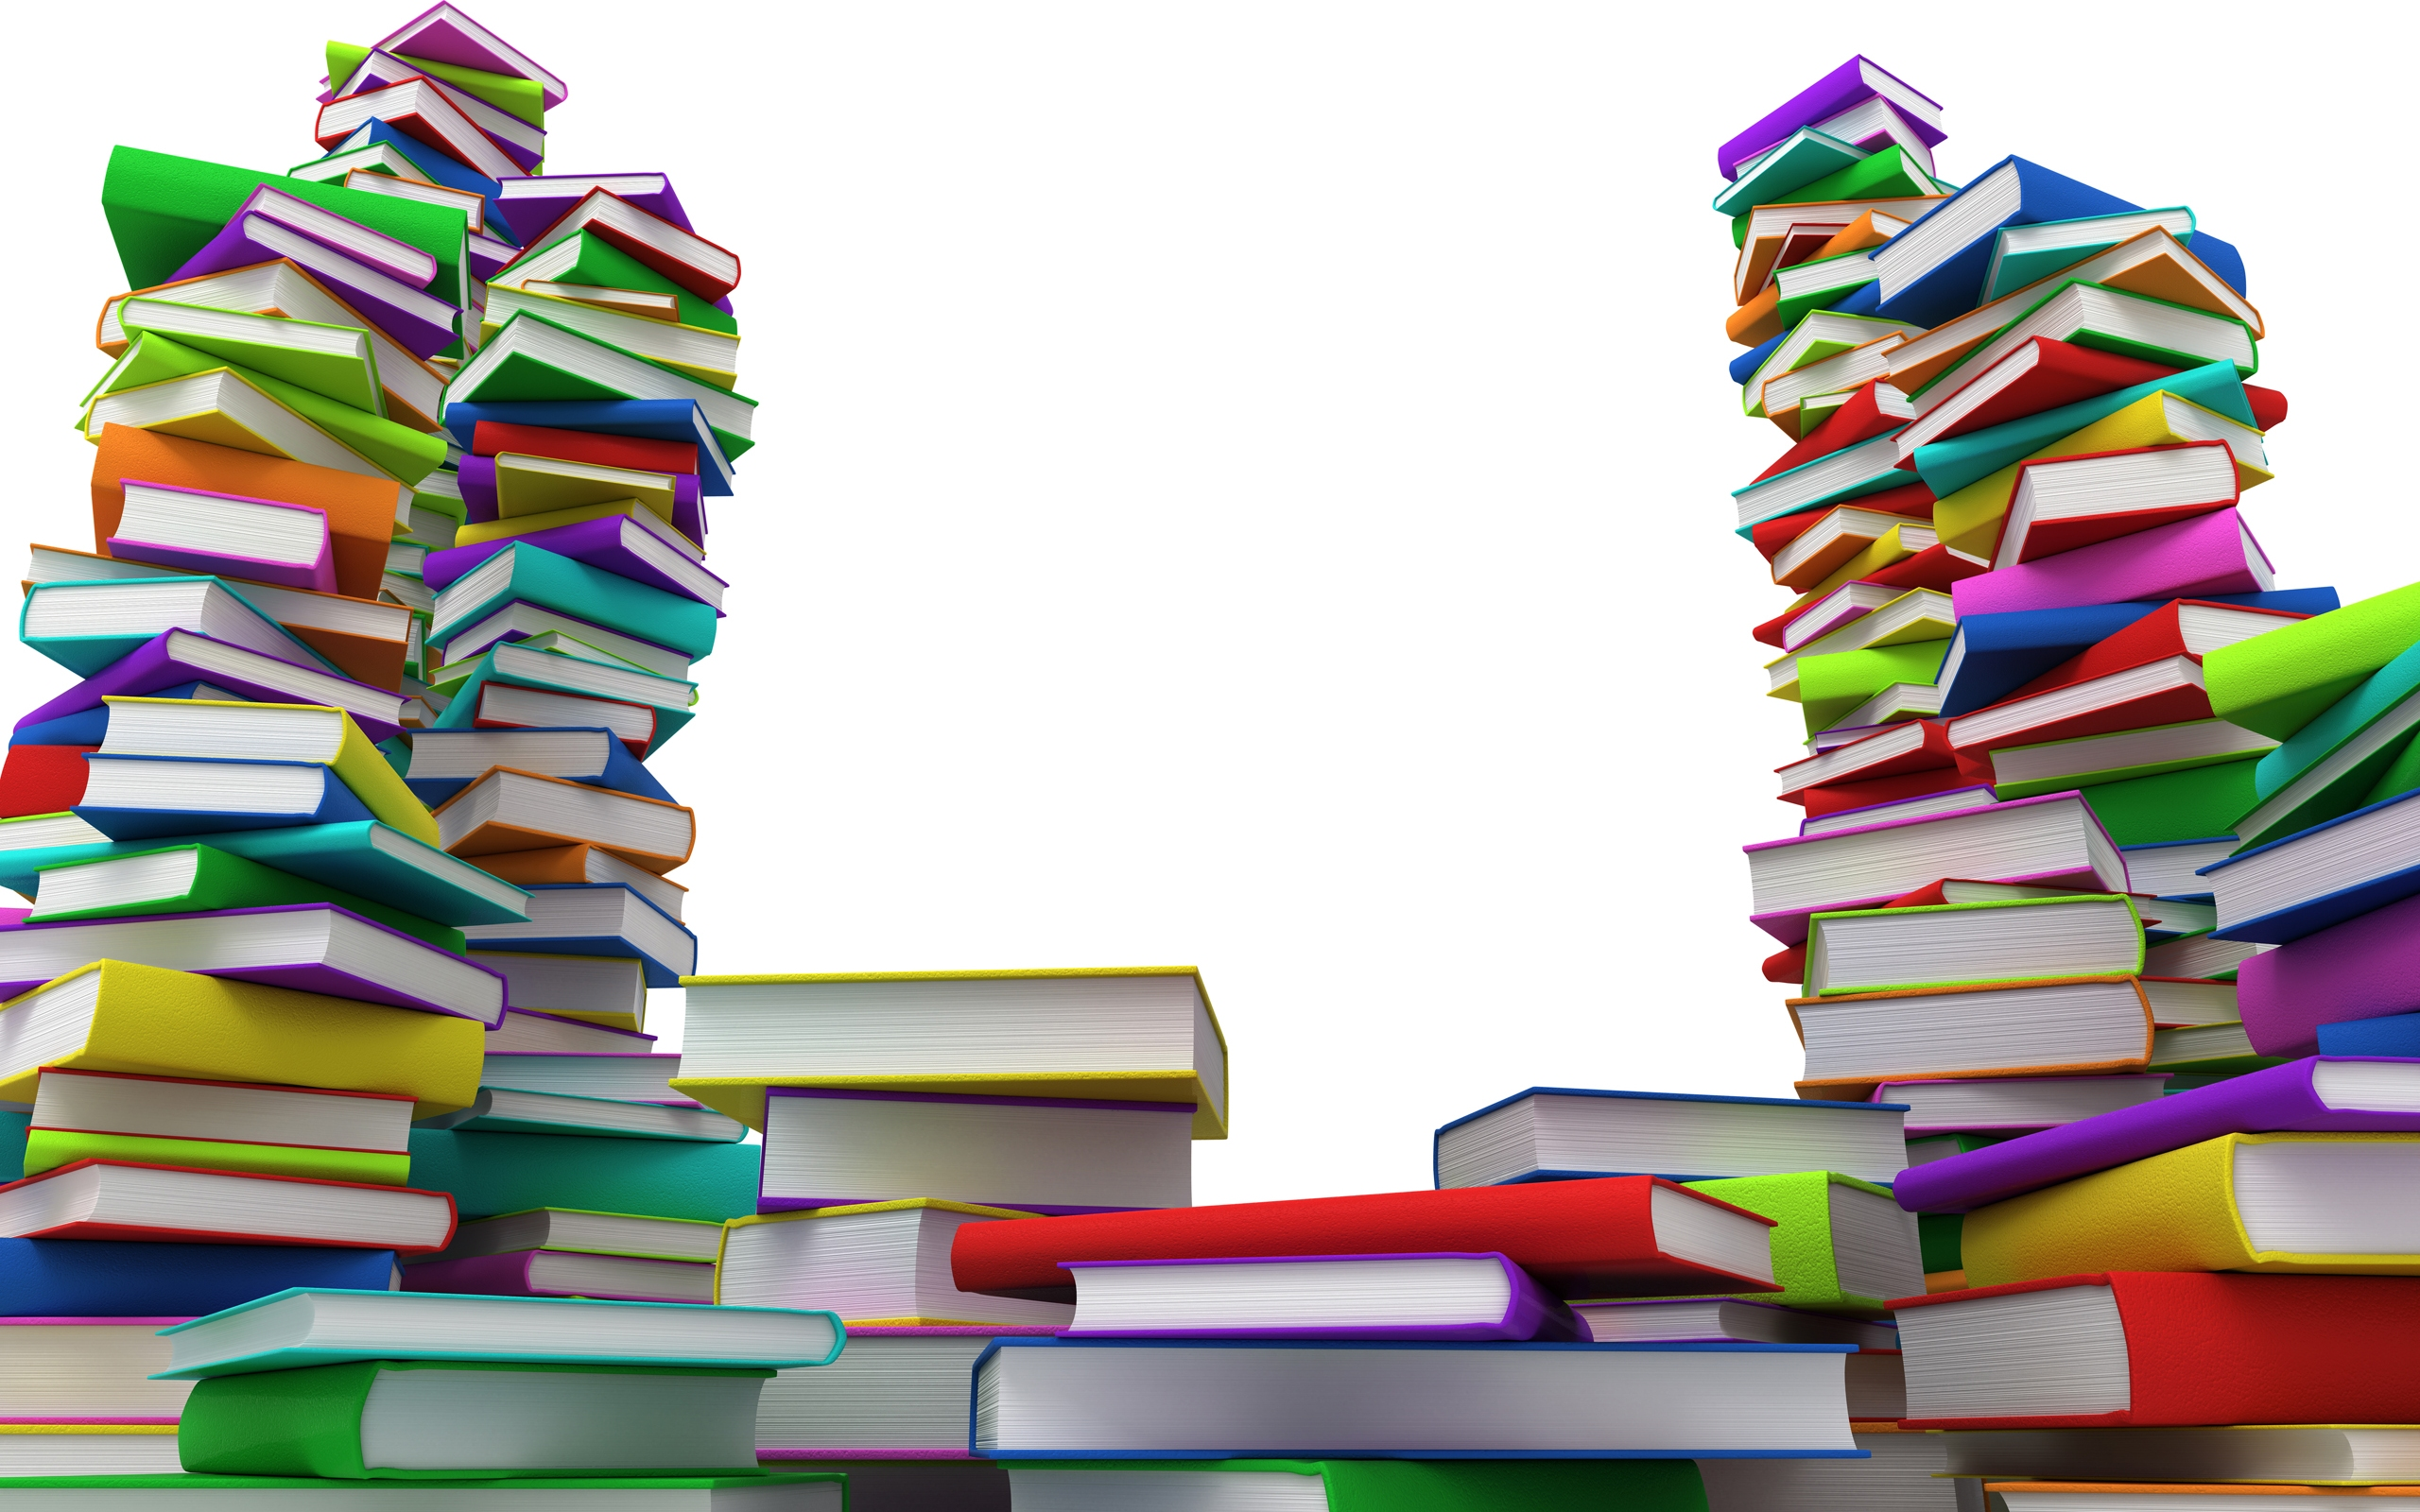 189 Book HD Wallpapers Background Images 2560x1600